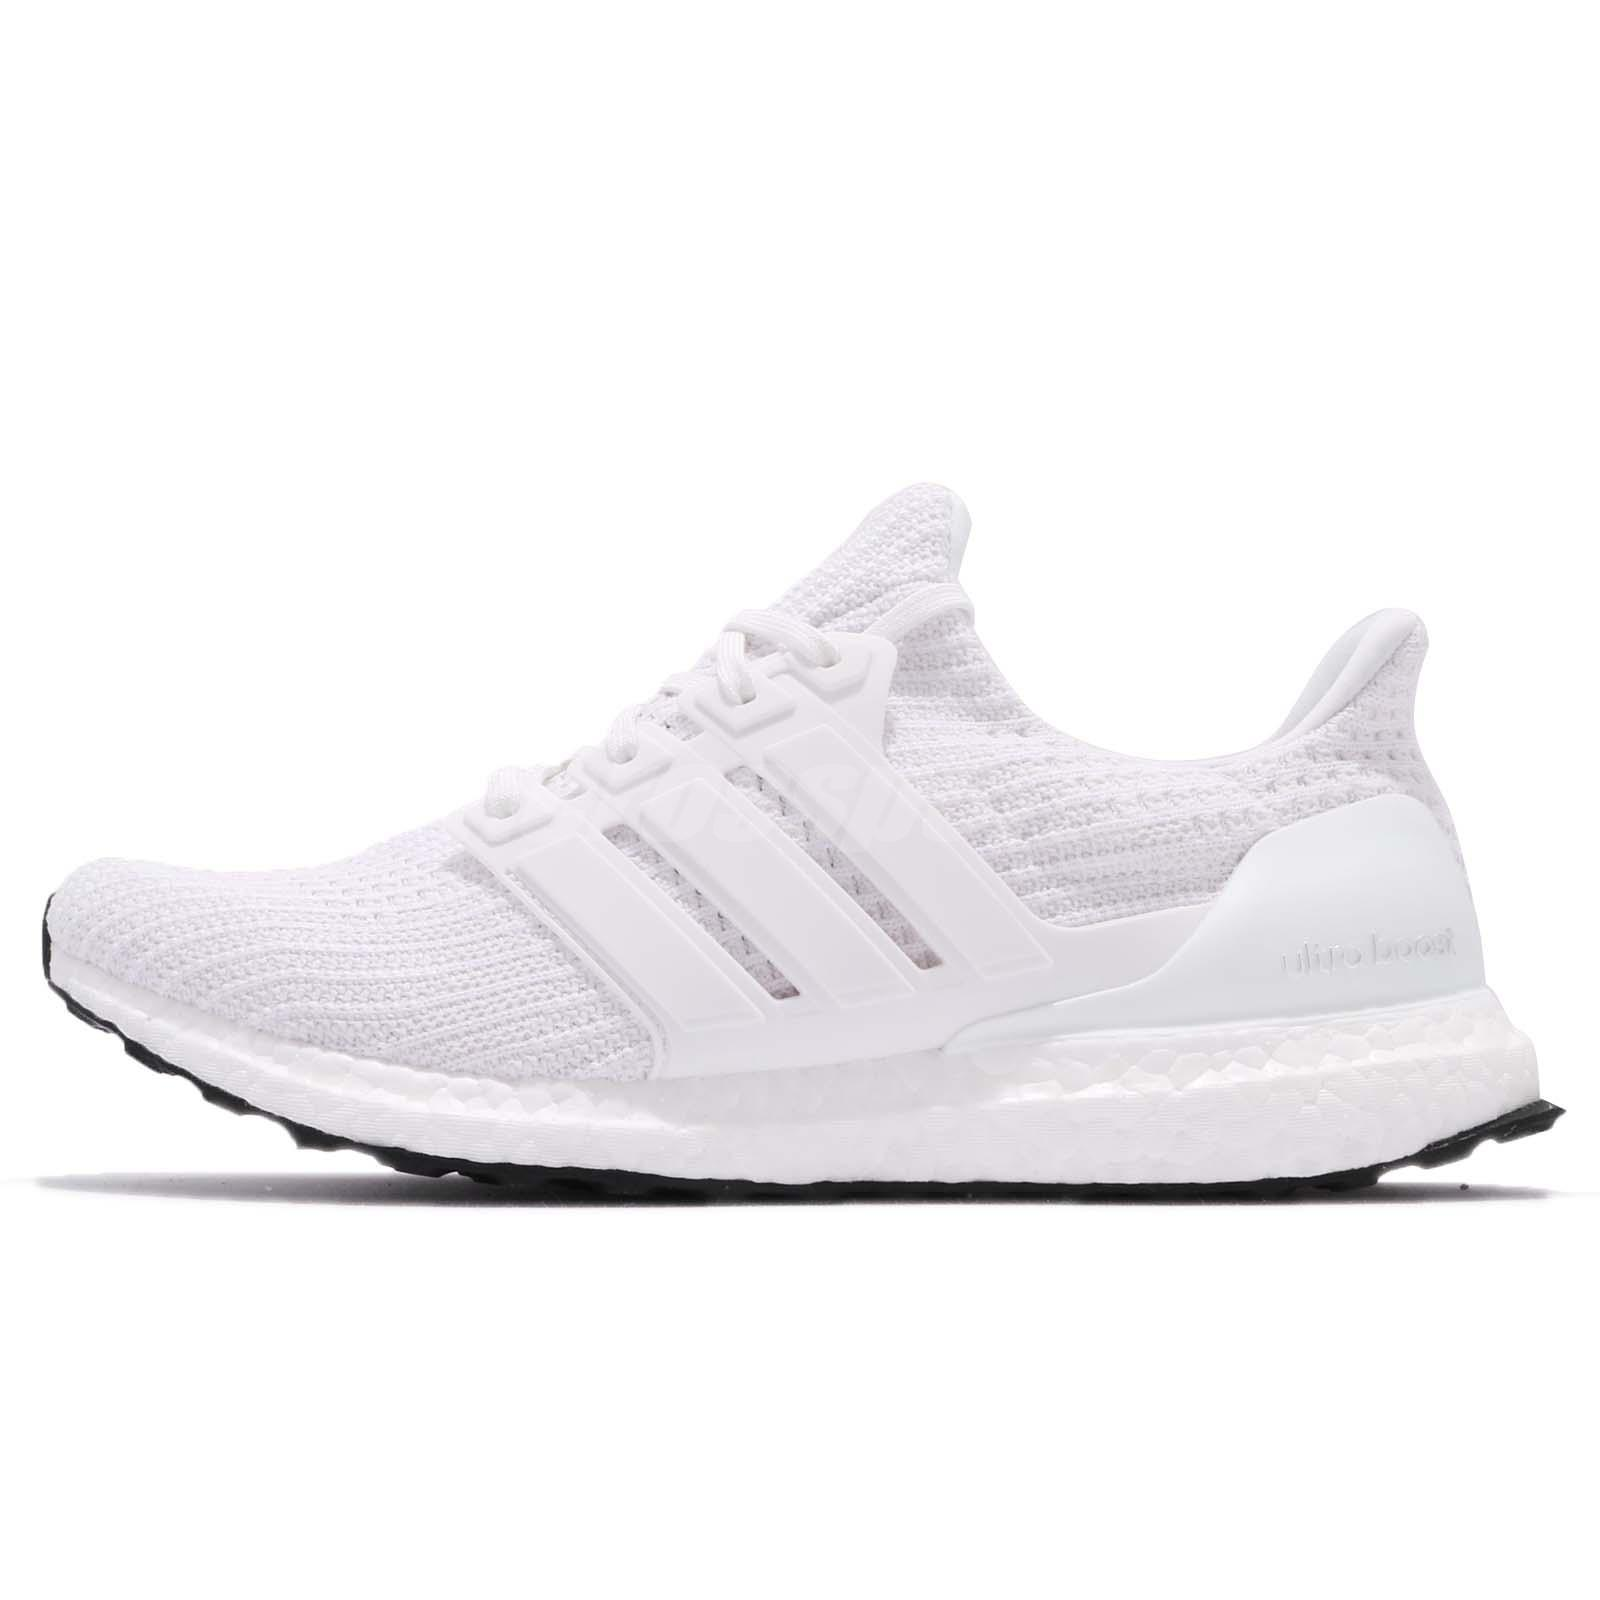 check out 17d8d f4e08 adidas UltraBOOST 4.0 Continental Footwear White Men Running Shoes BB6168